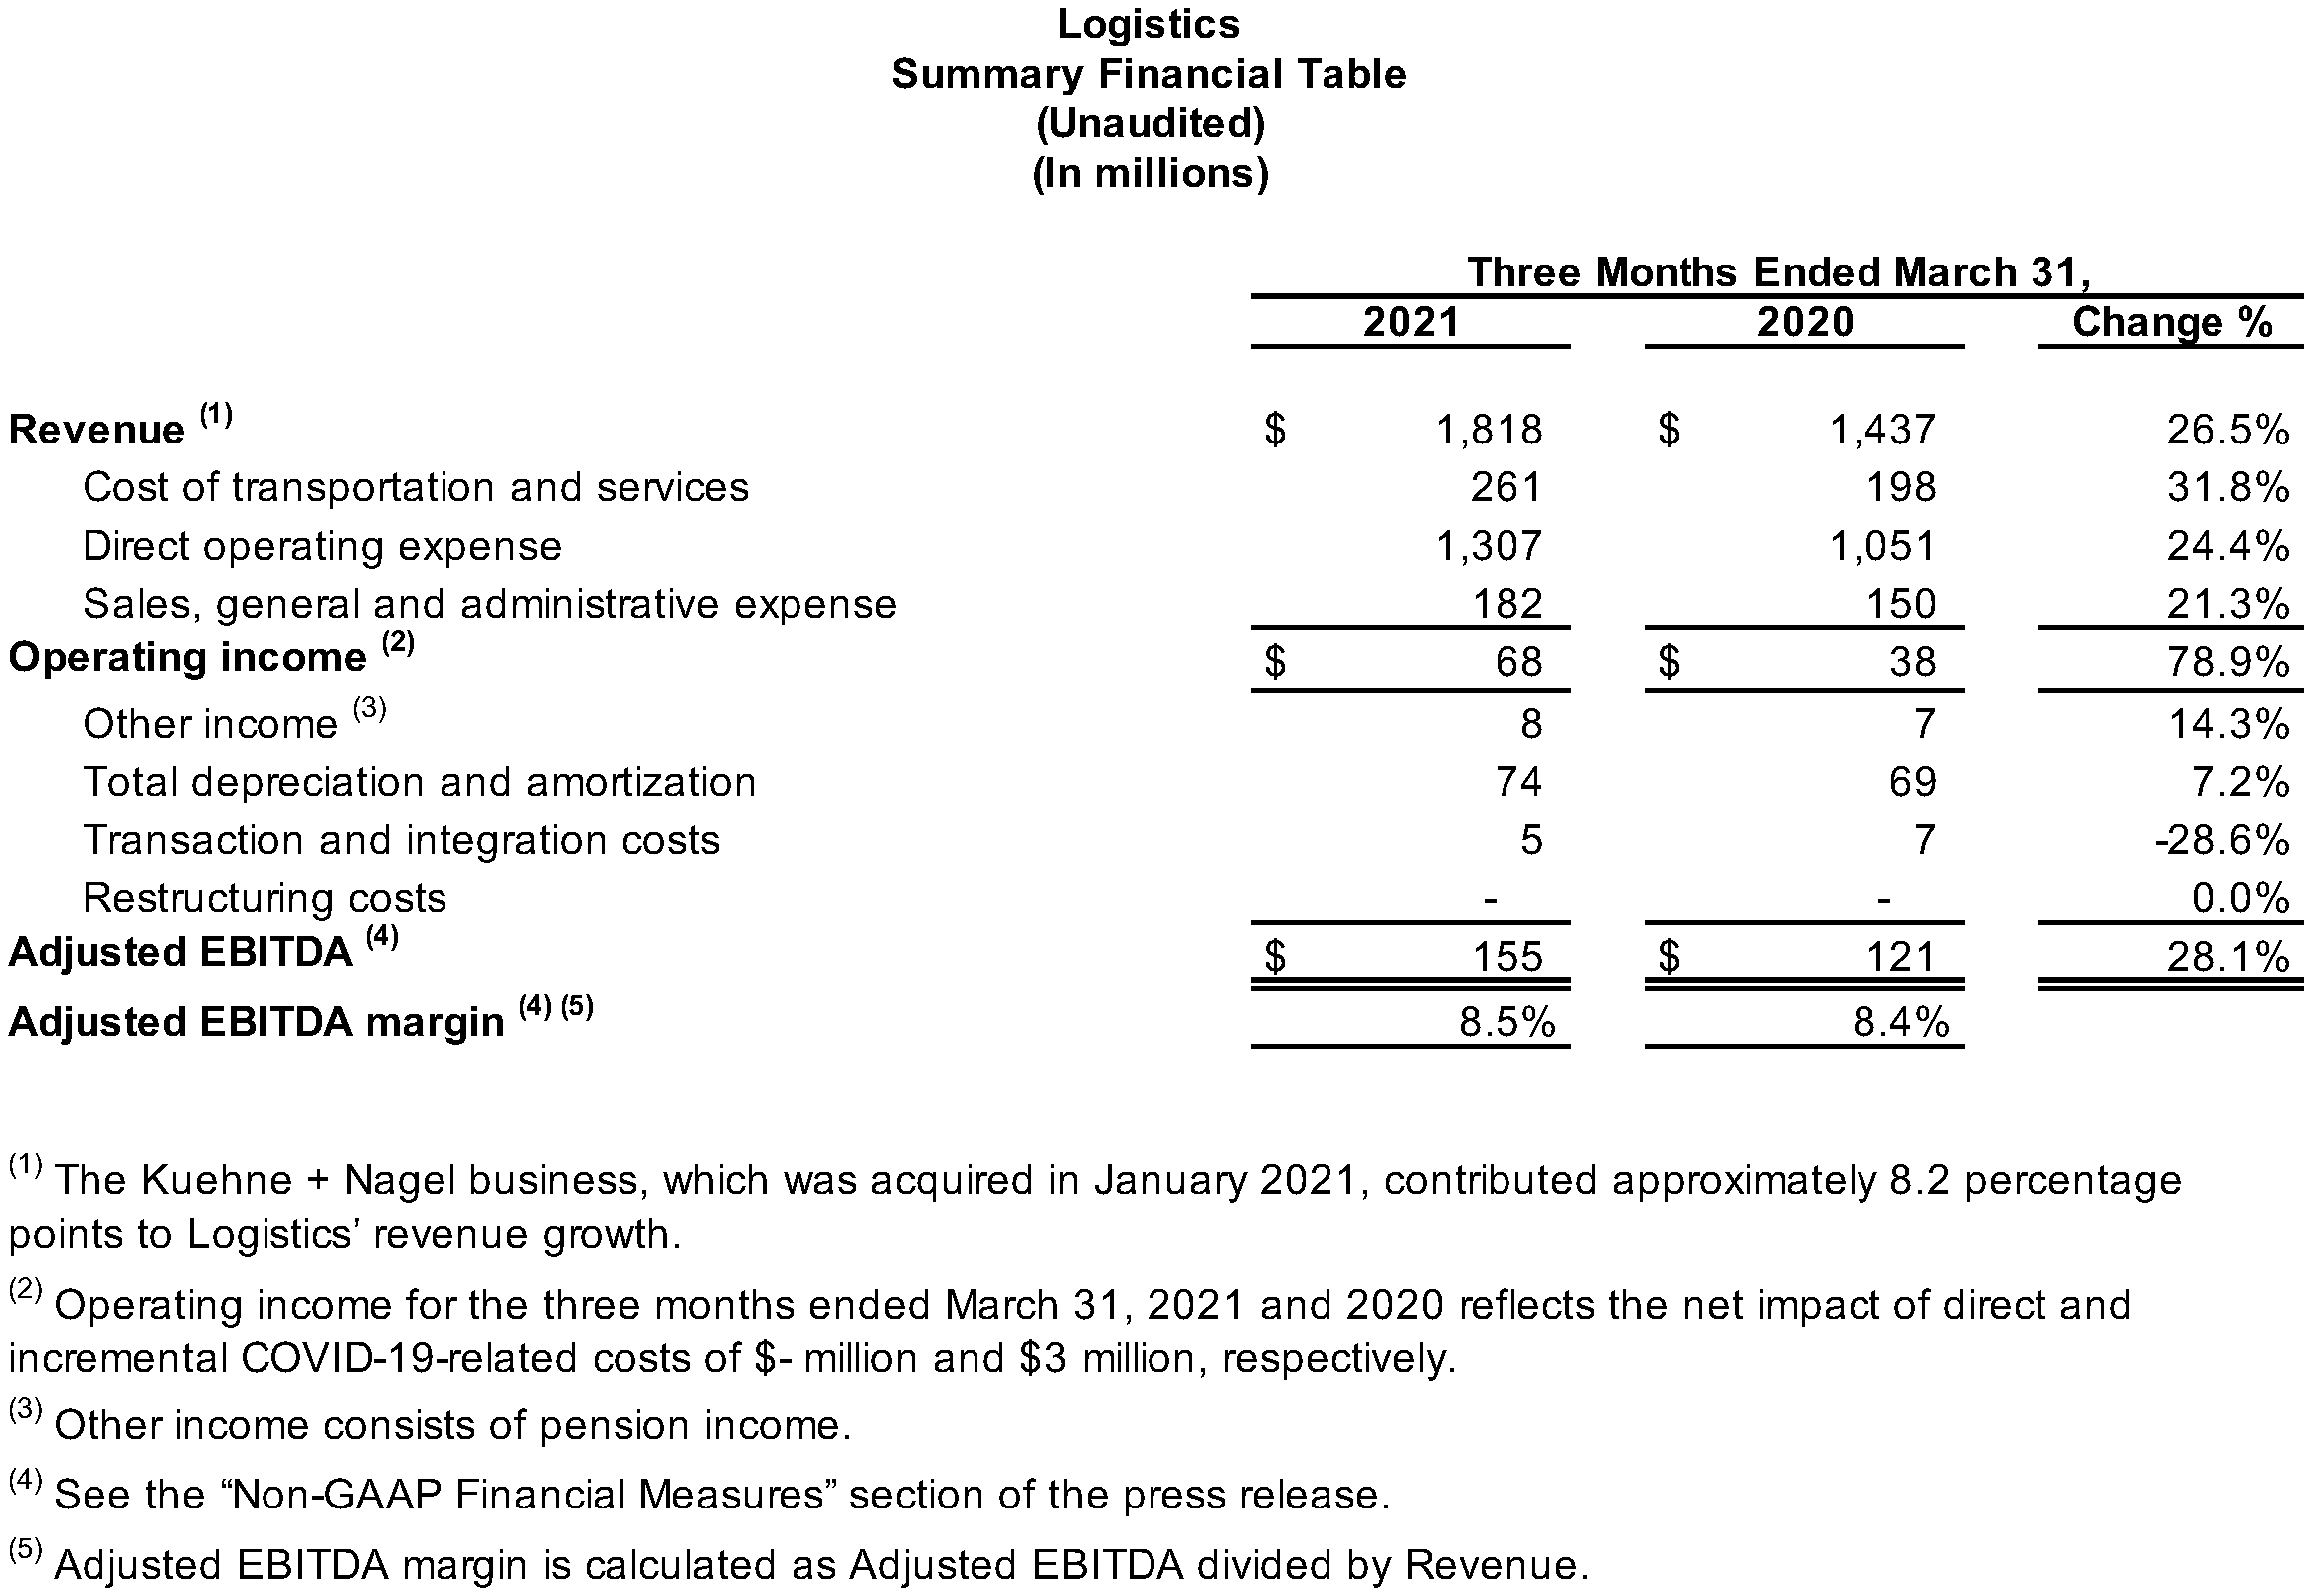 Logistics Summary Financial Table (Unaudited)